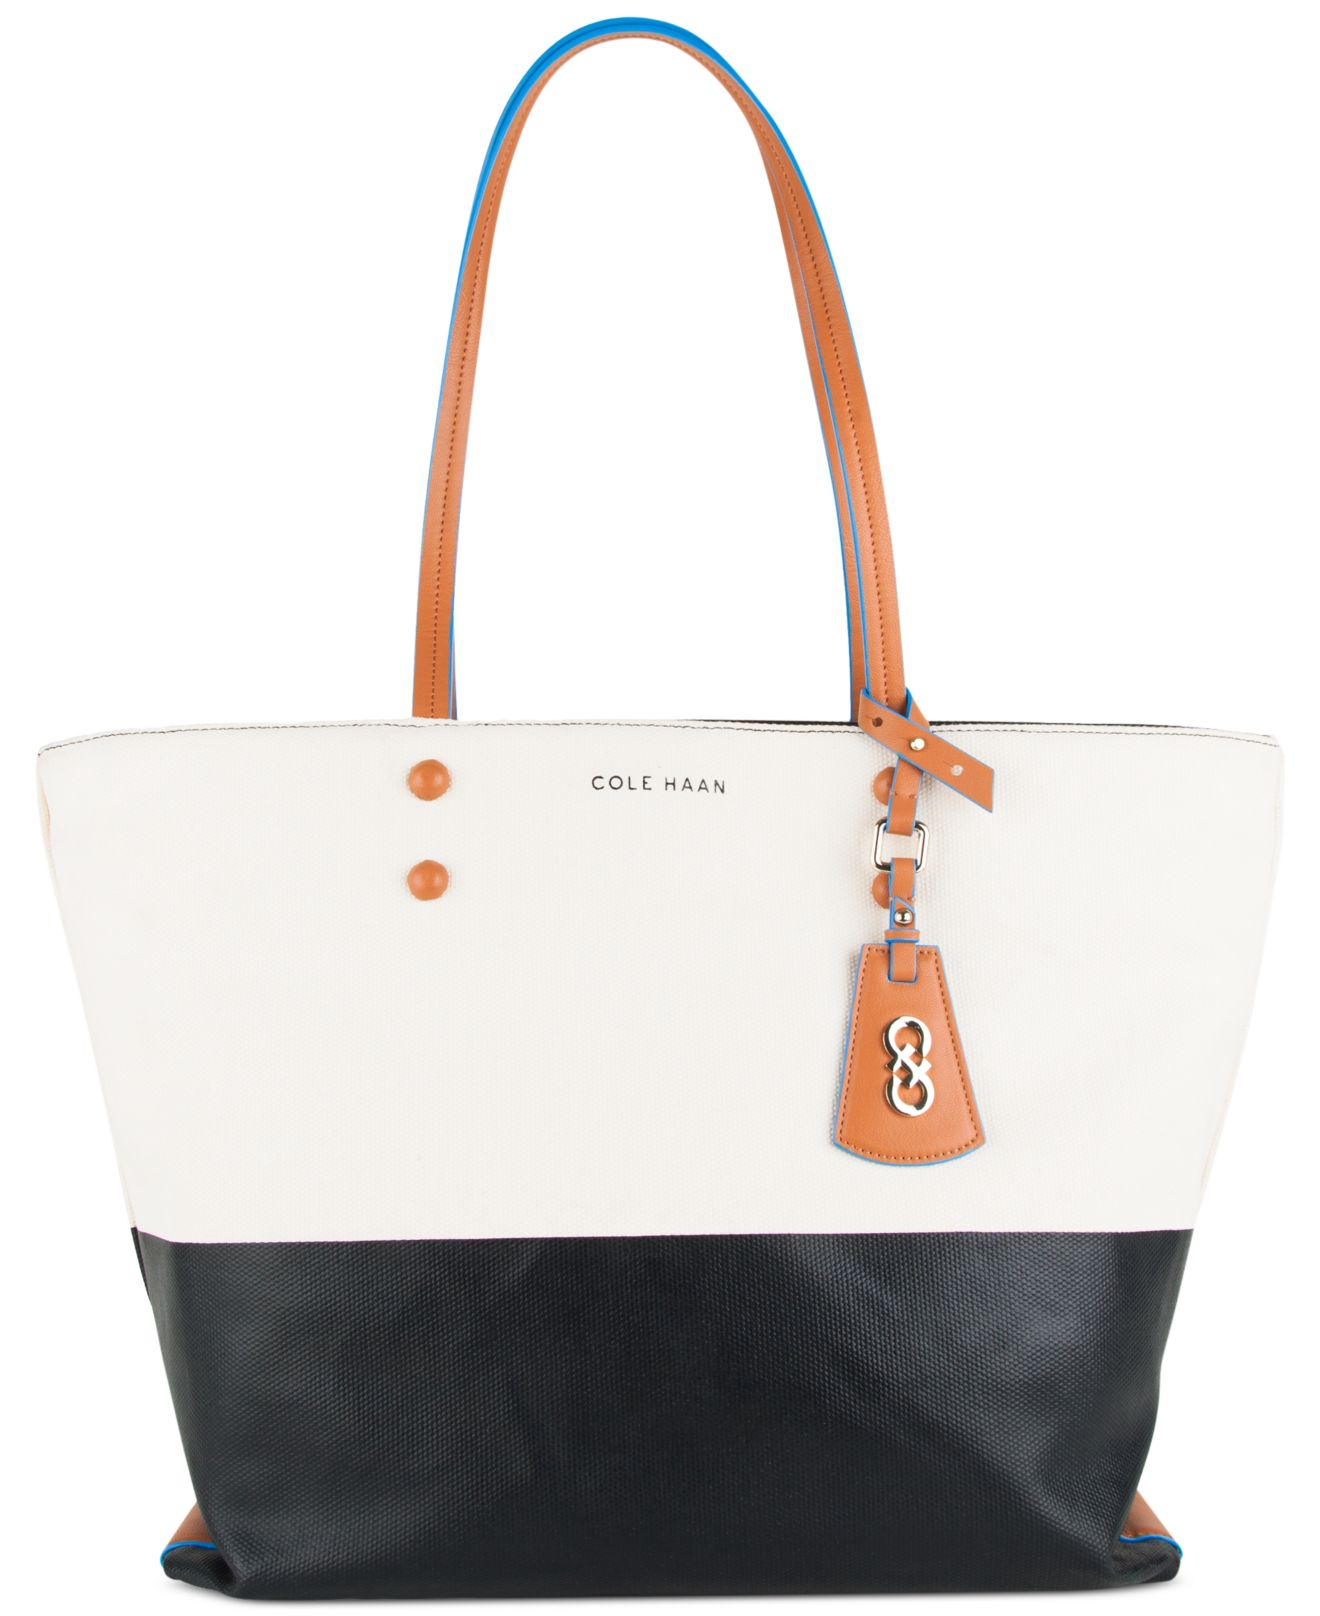 cadf5b6fe8 Cole Haan Colorblock Hannah Tote in Black - Lyst